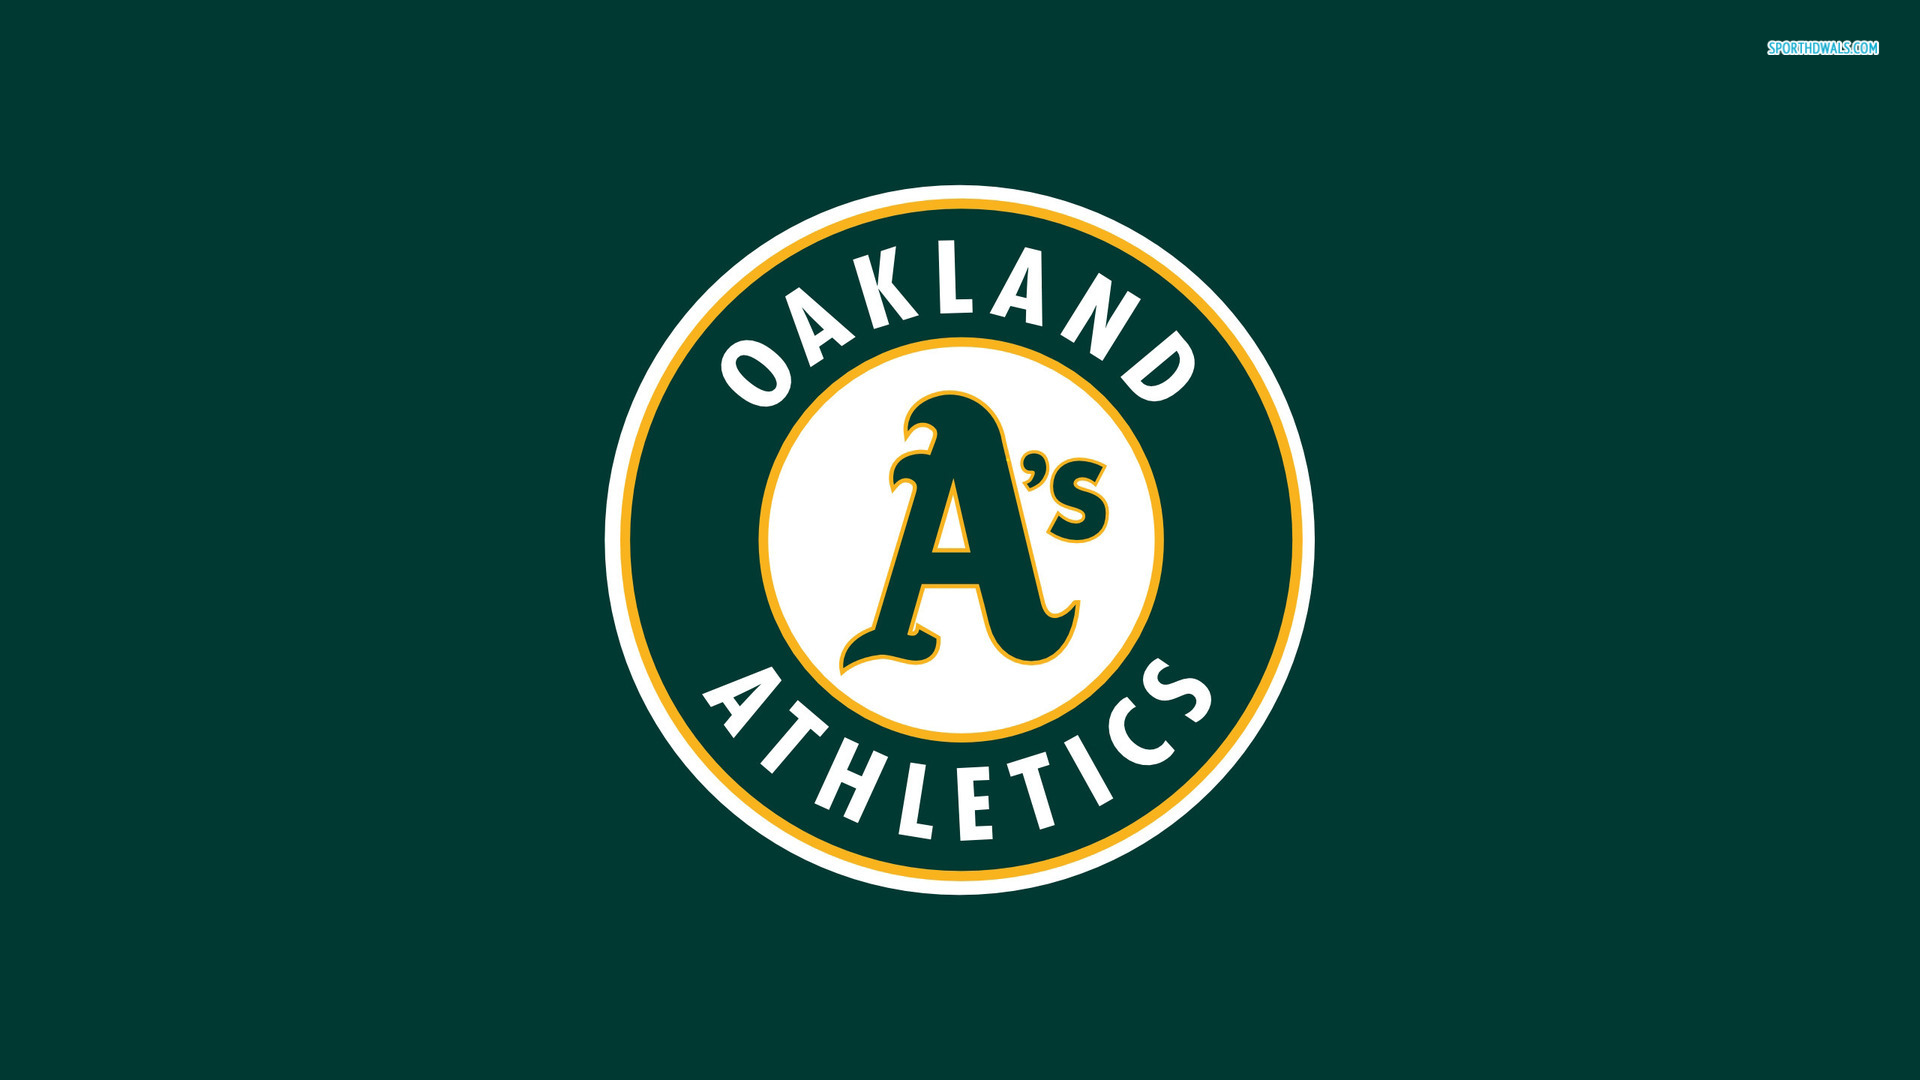 1920x1080 - Oakland Athletics Wallpapers 1